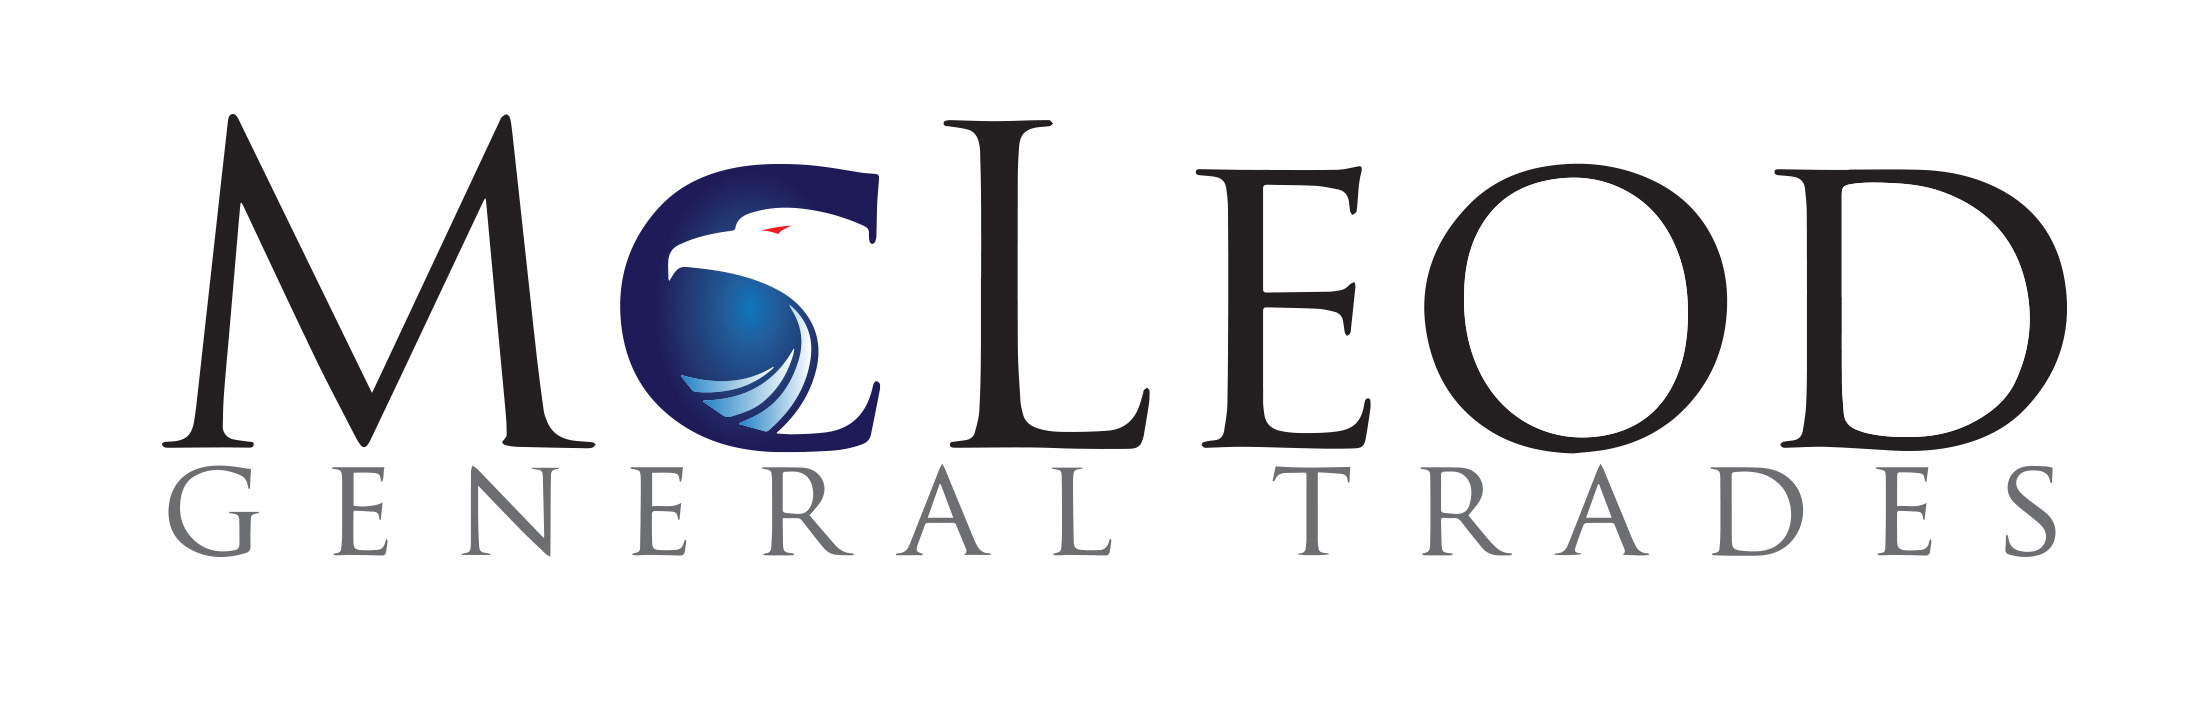 McLeod General Trades, LLC